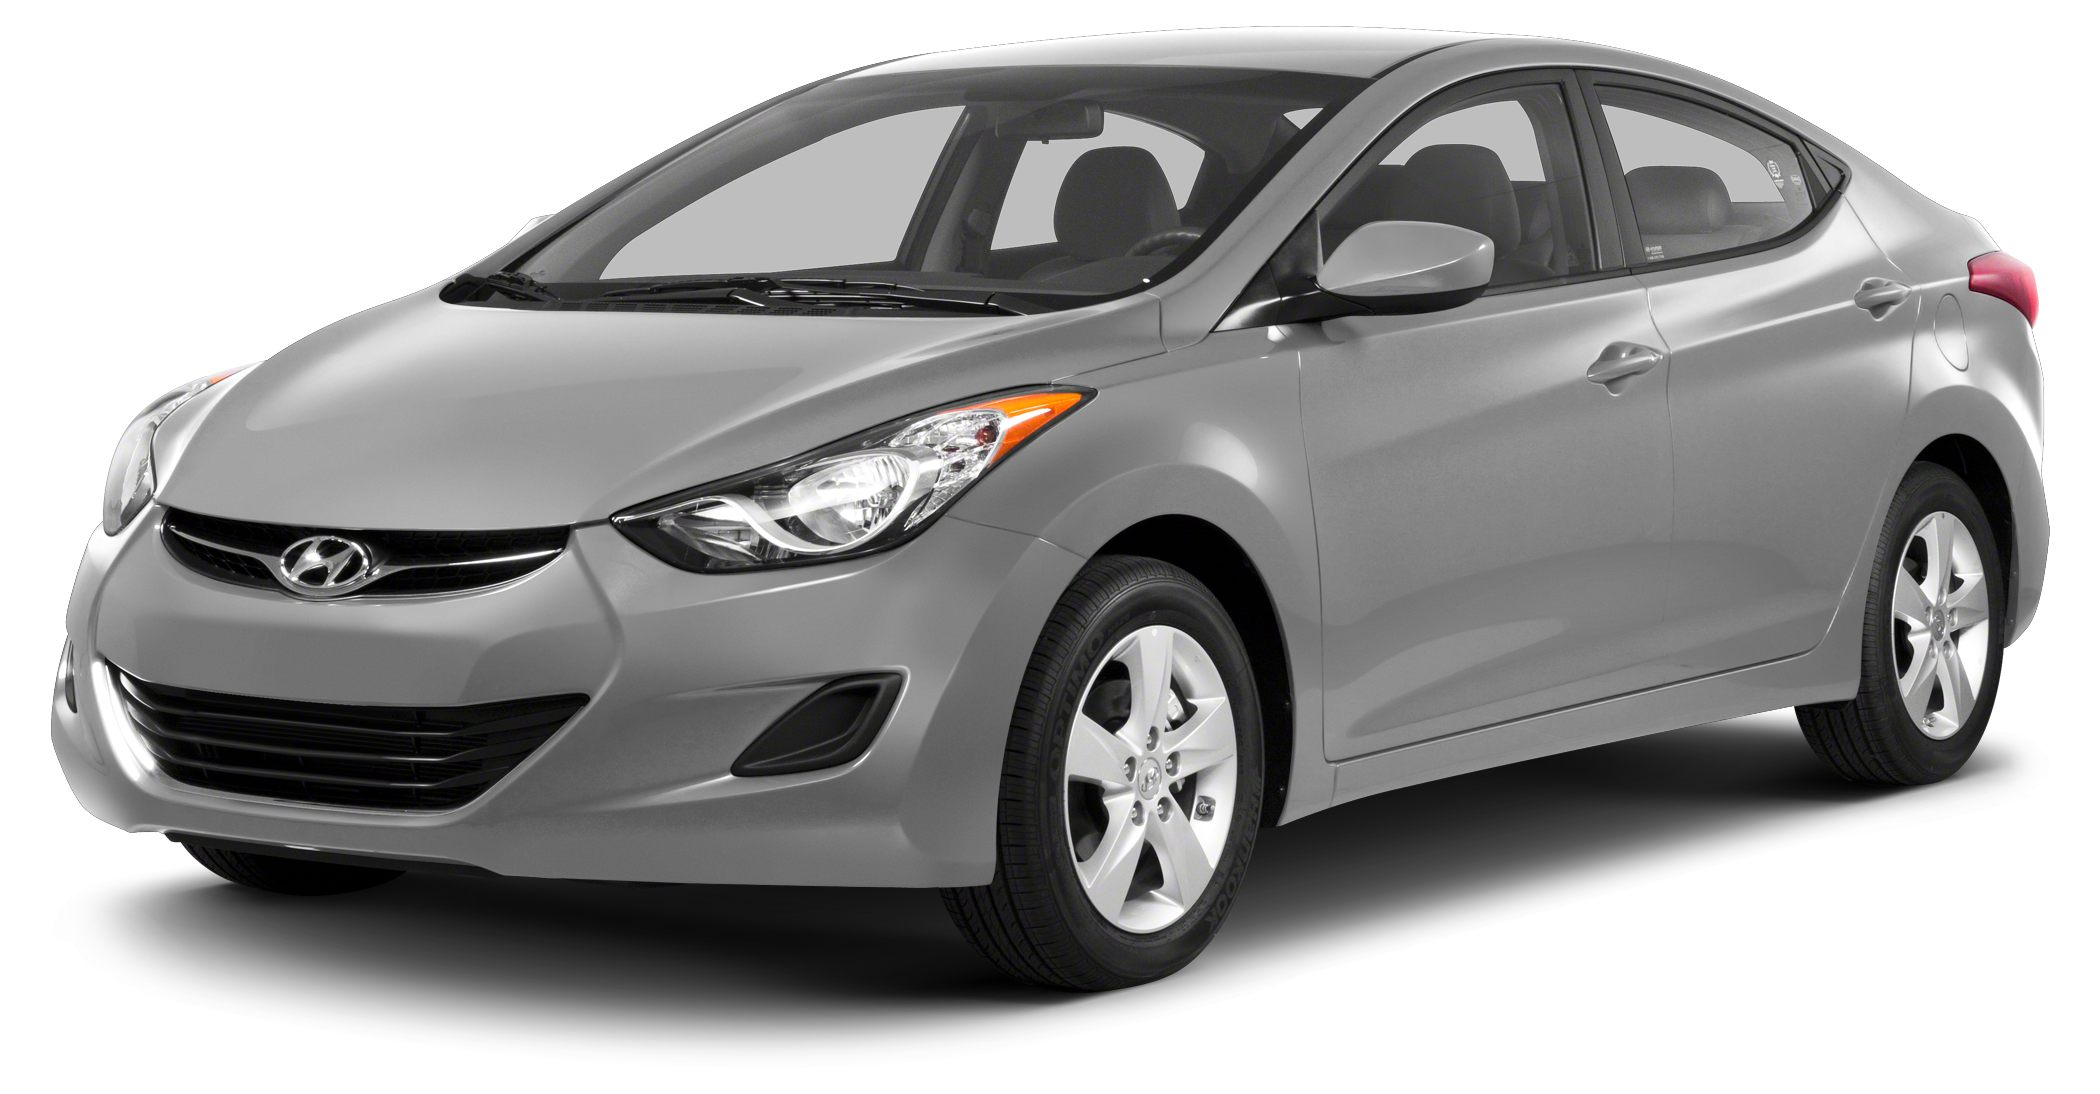 2013 Hyundai Elantra GLS Only 18k MILES Hyundai Certified and a Perfect One Owner Car Fax You